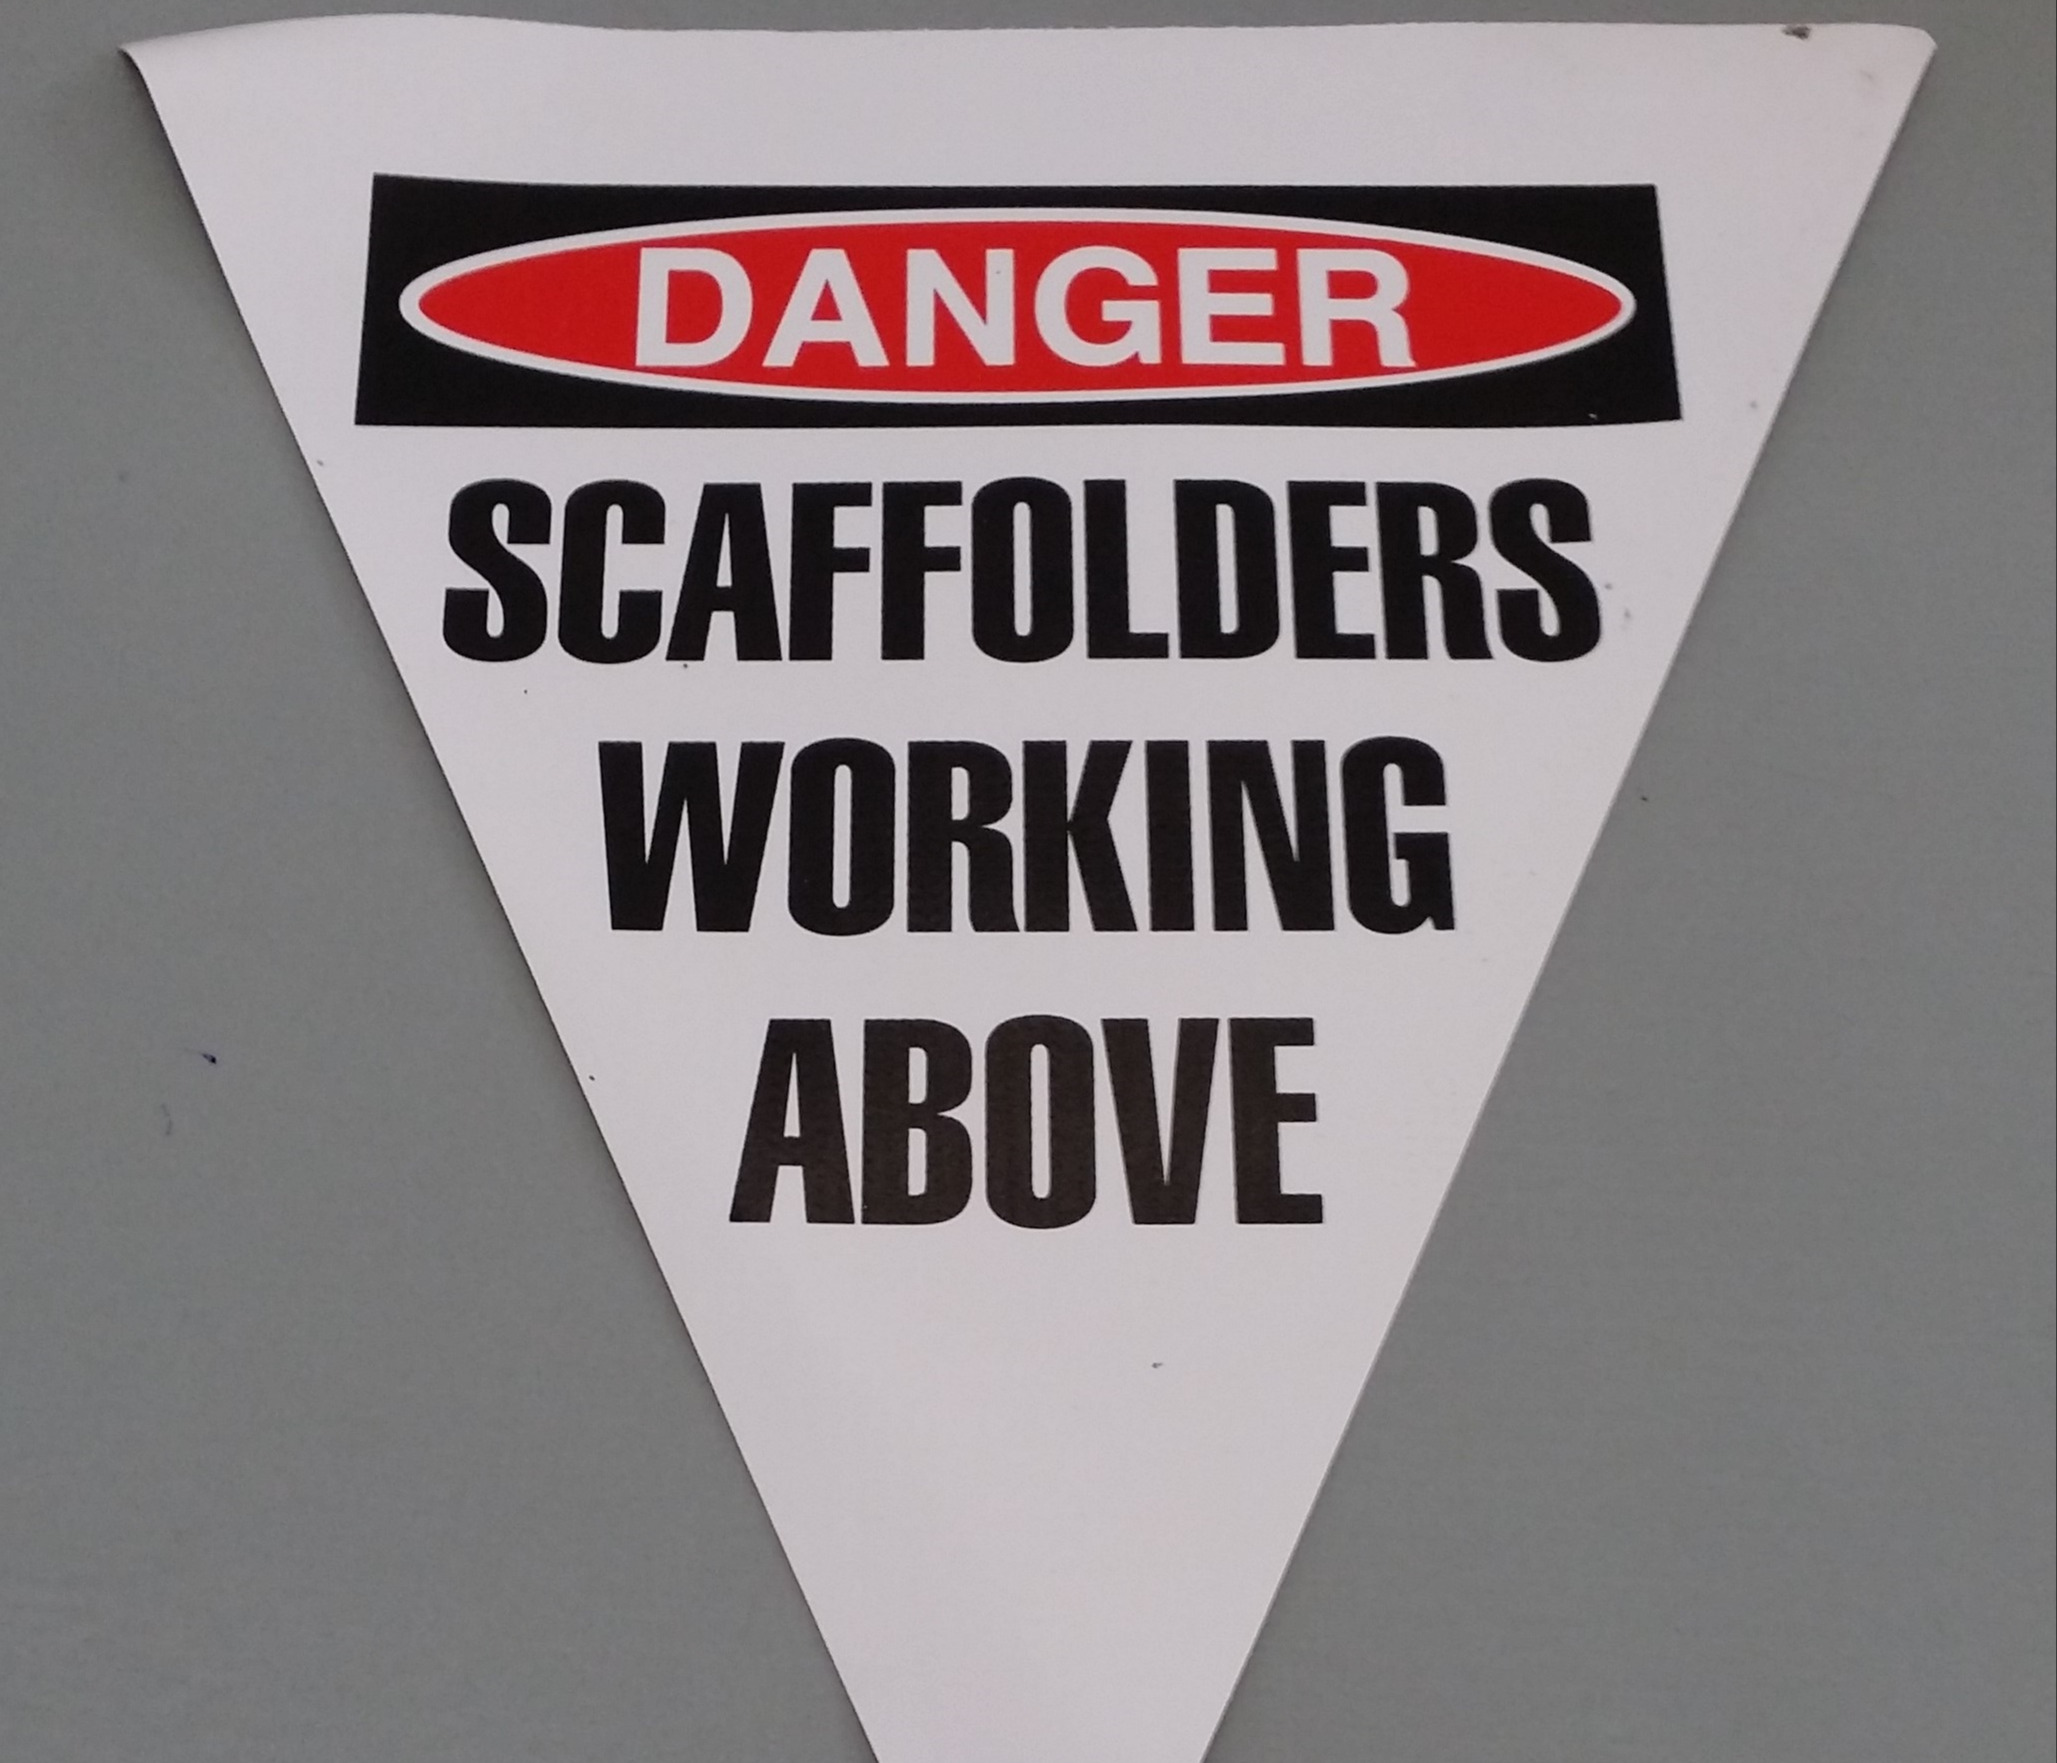 Danger Scaffolders Working Above